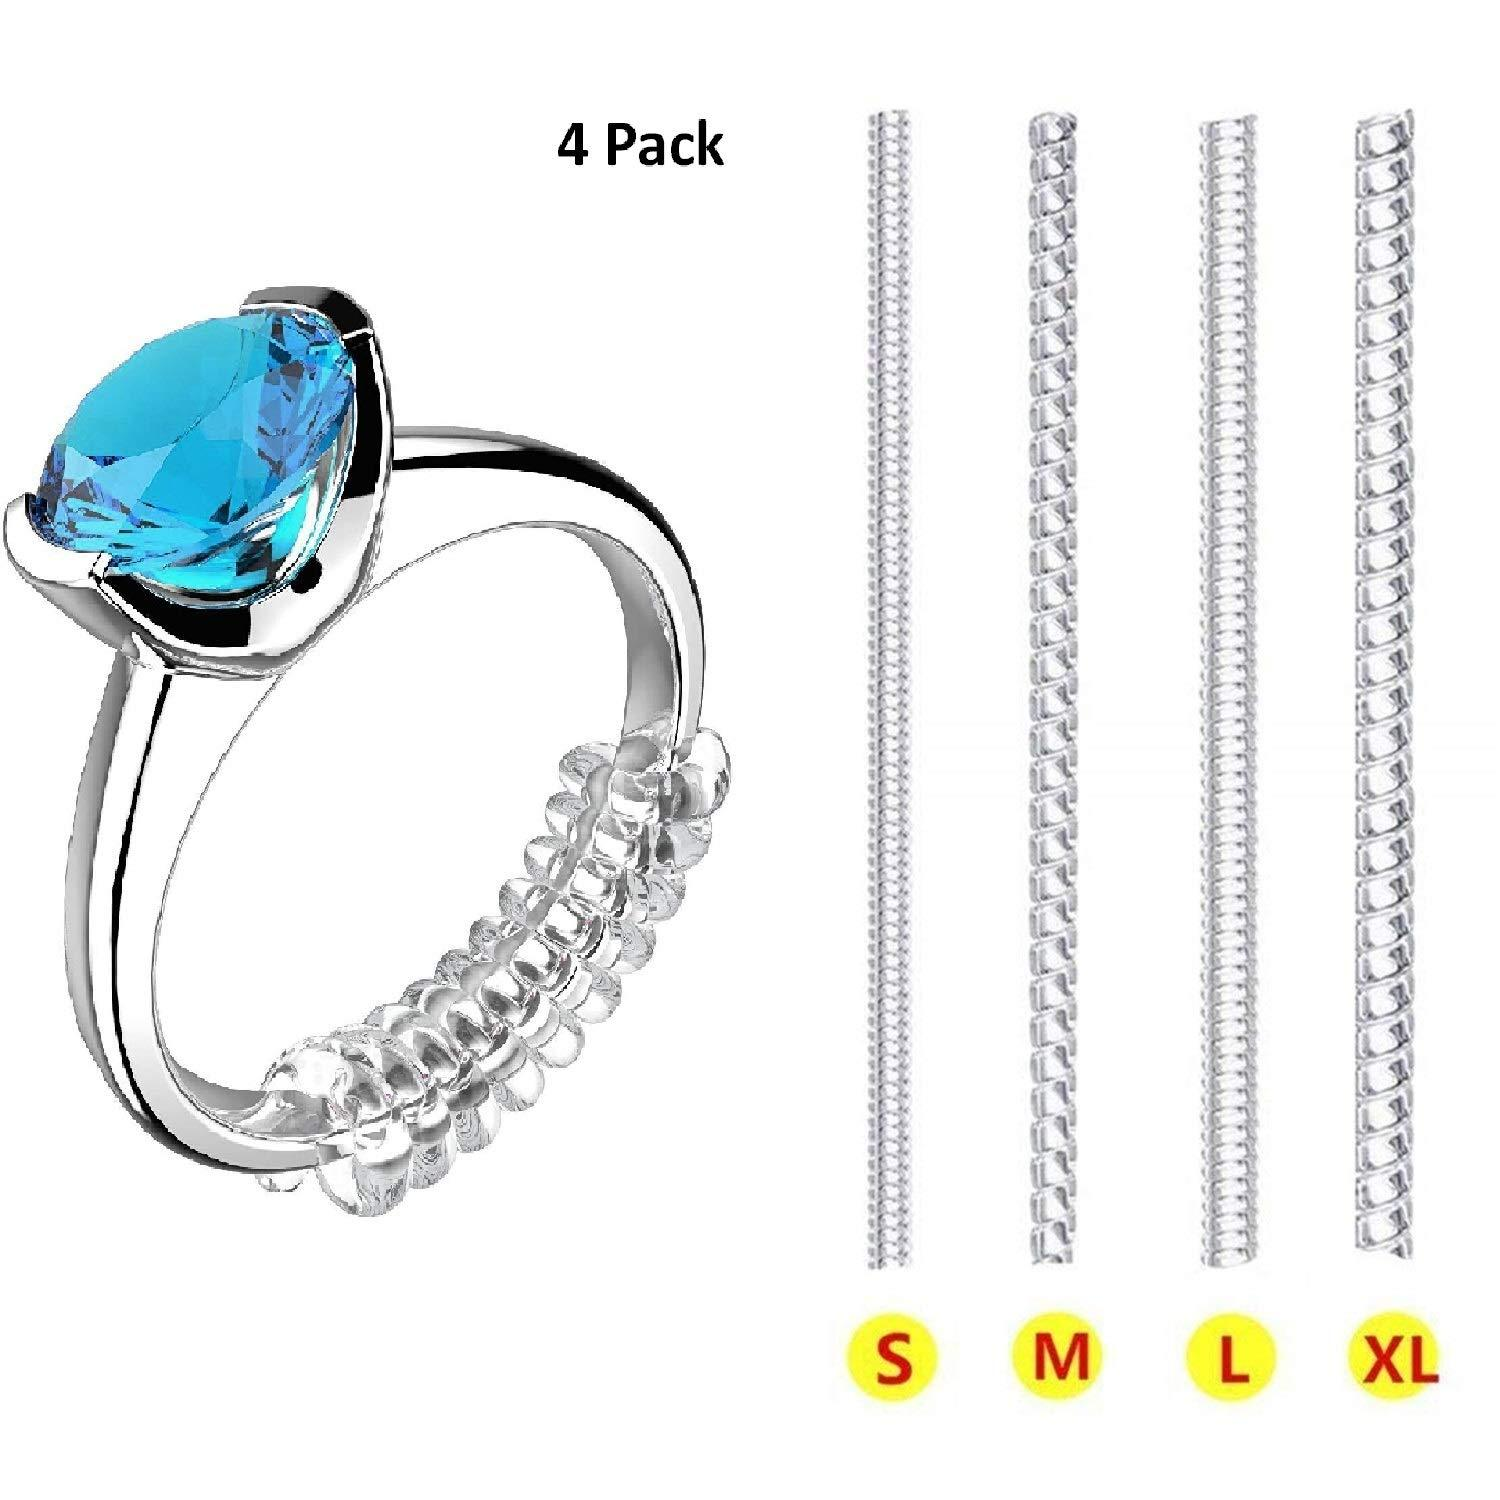 Ring Size Adjuster Ring Guard 8 or 10 -SHIPS FREE Size Small Fits Up To 2mm Shank /& Large Fits Up To 3mm Shank Ring Guards Set of 6